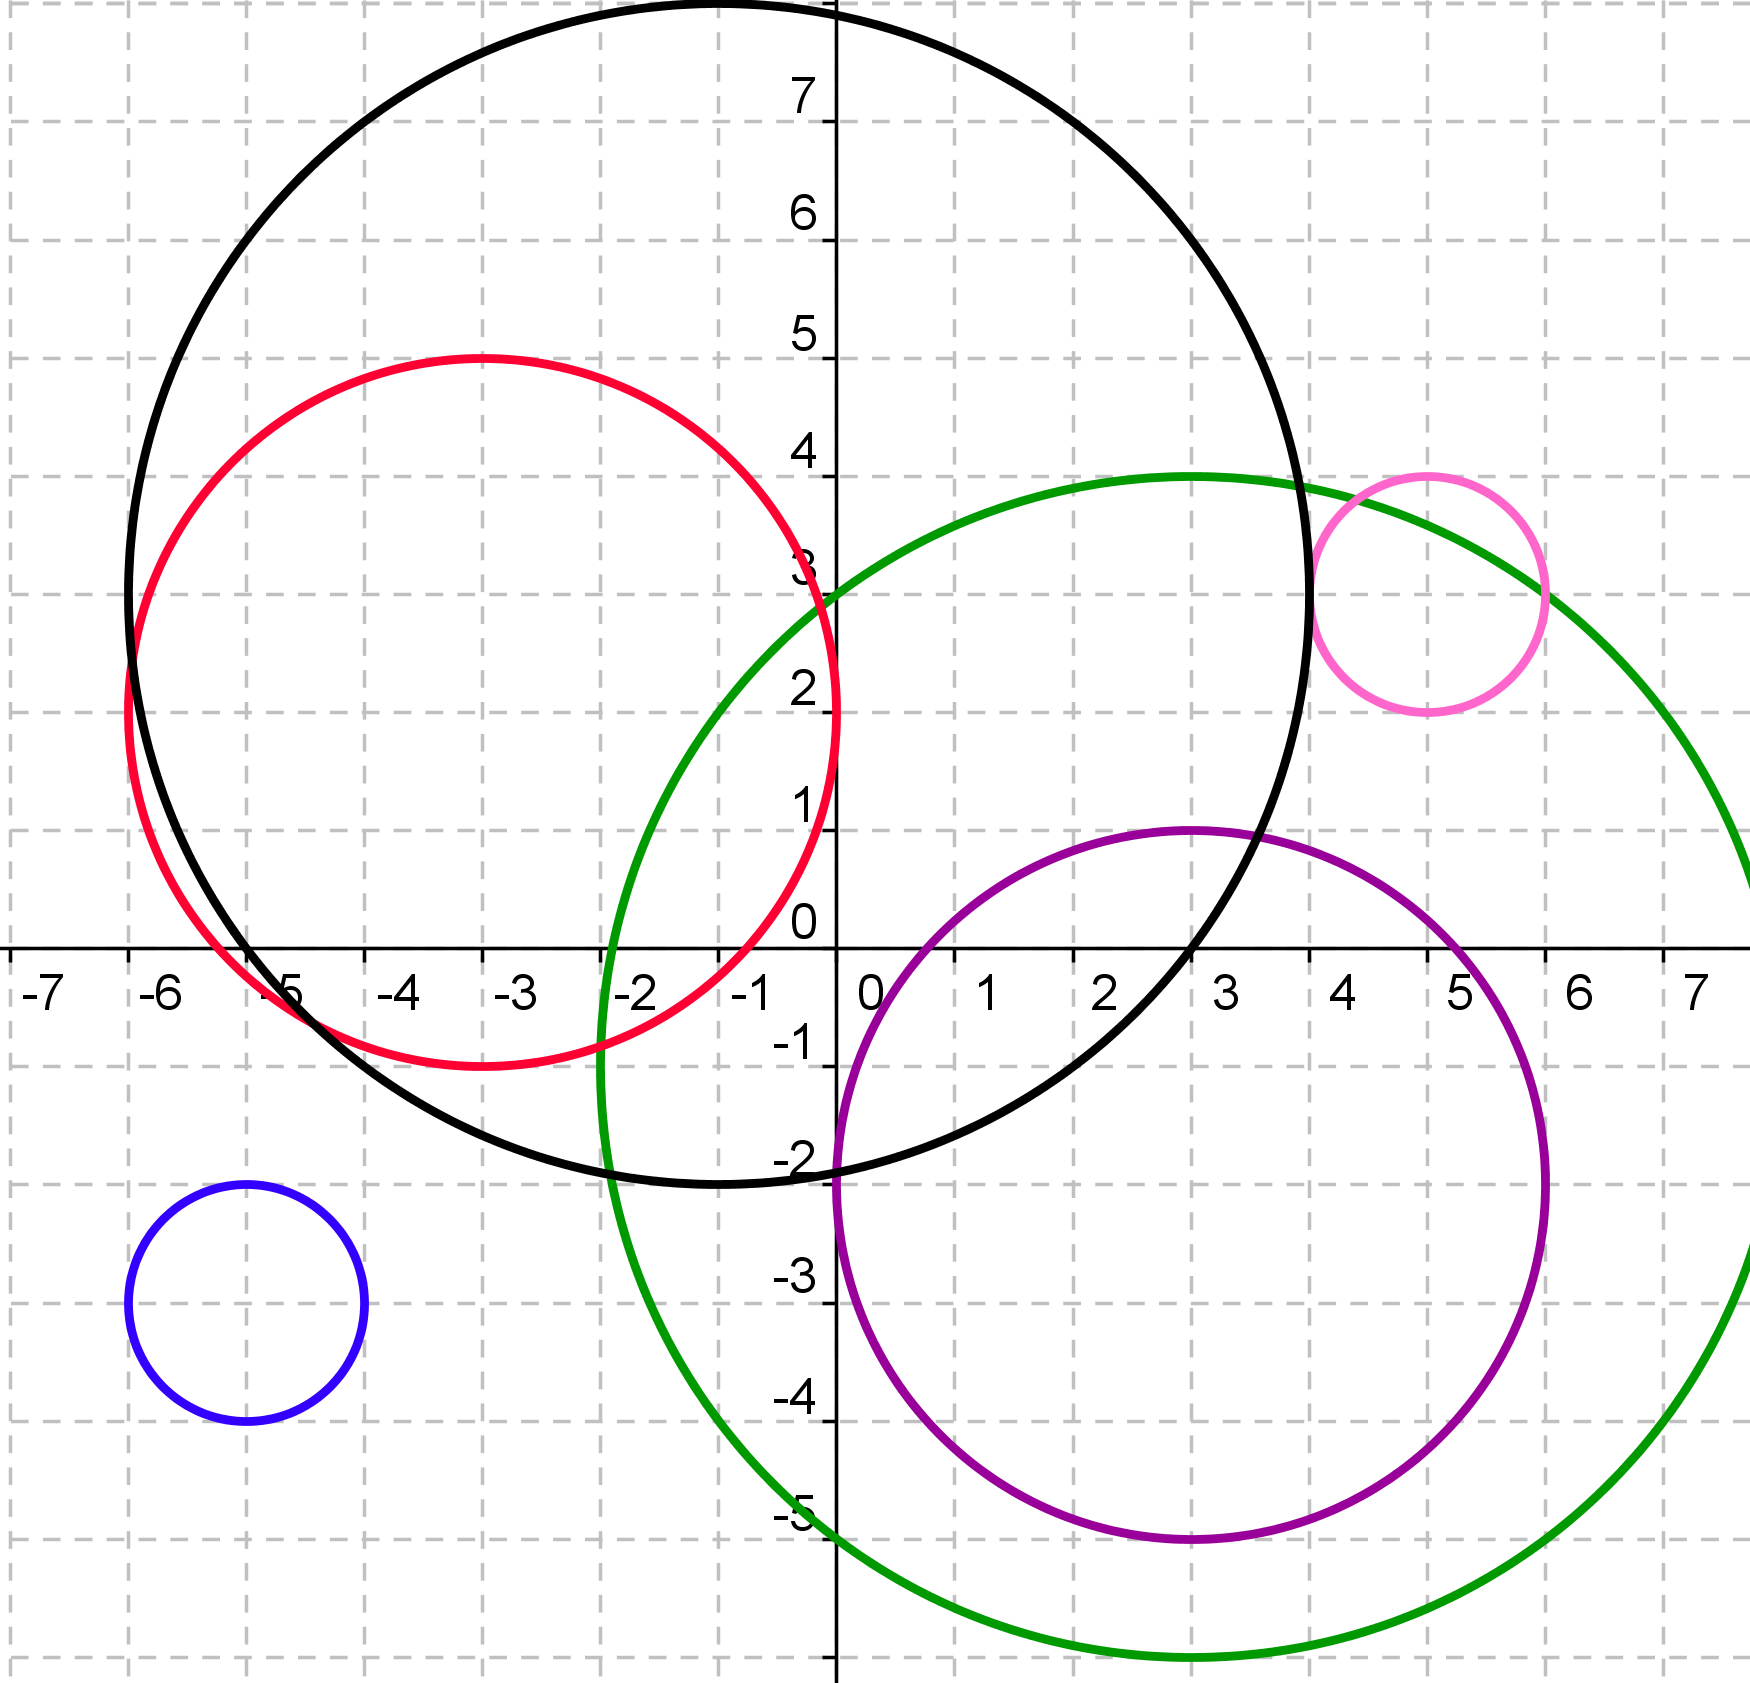 Worksheets Equations Of Circles Worksheet highaims geogebra workshop clare bucheit bucheit